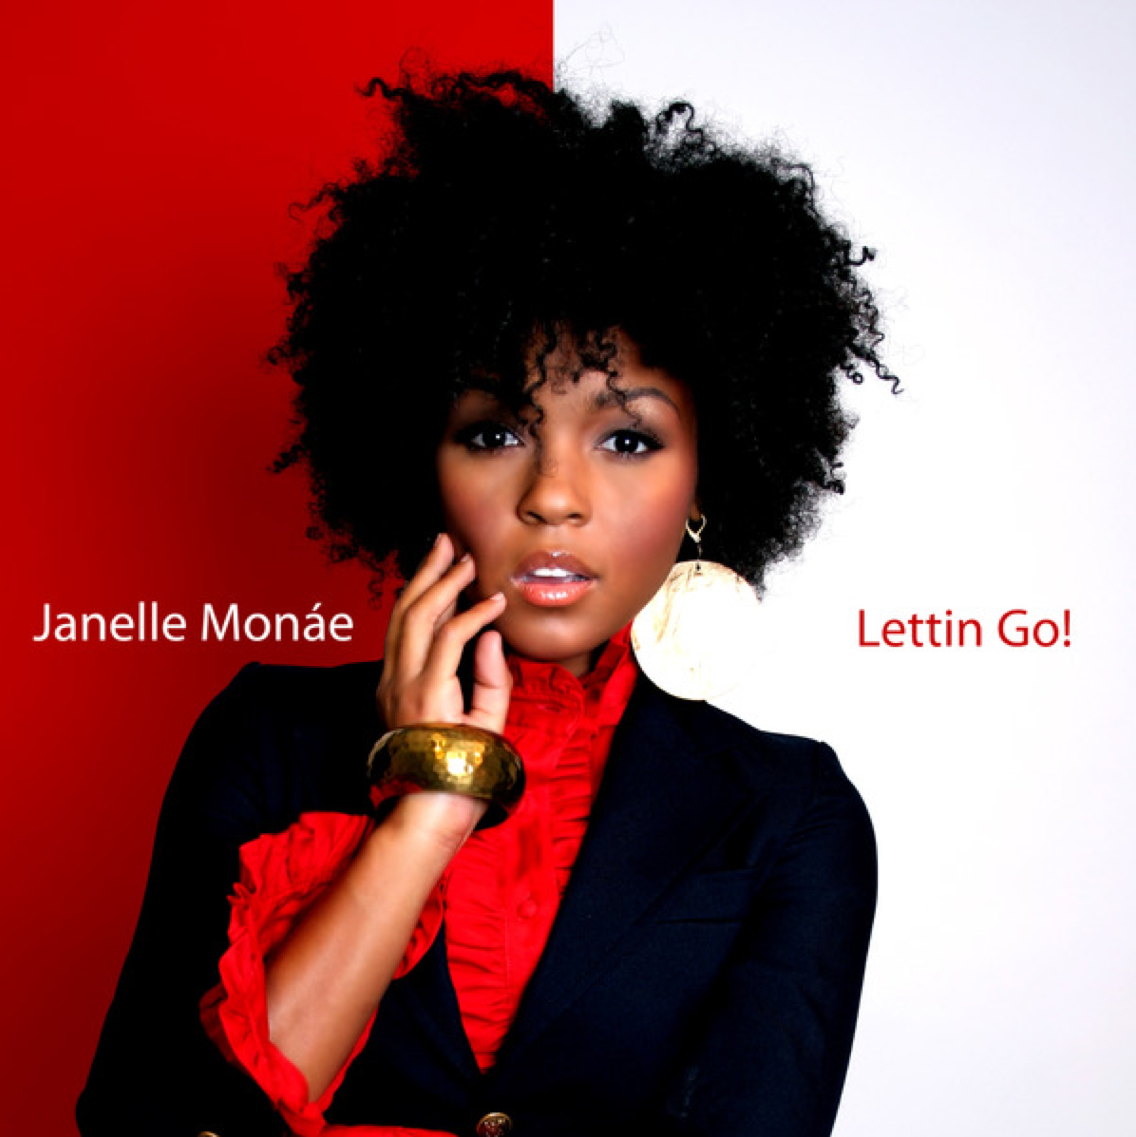 Janelle monae can make your day